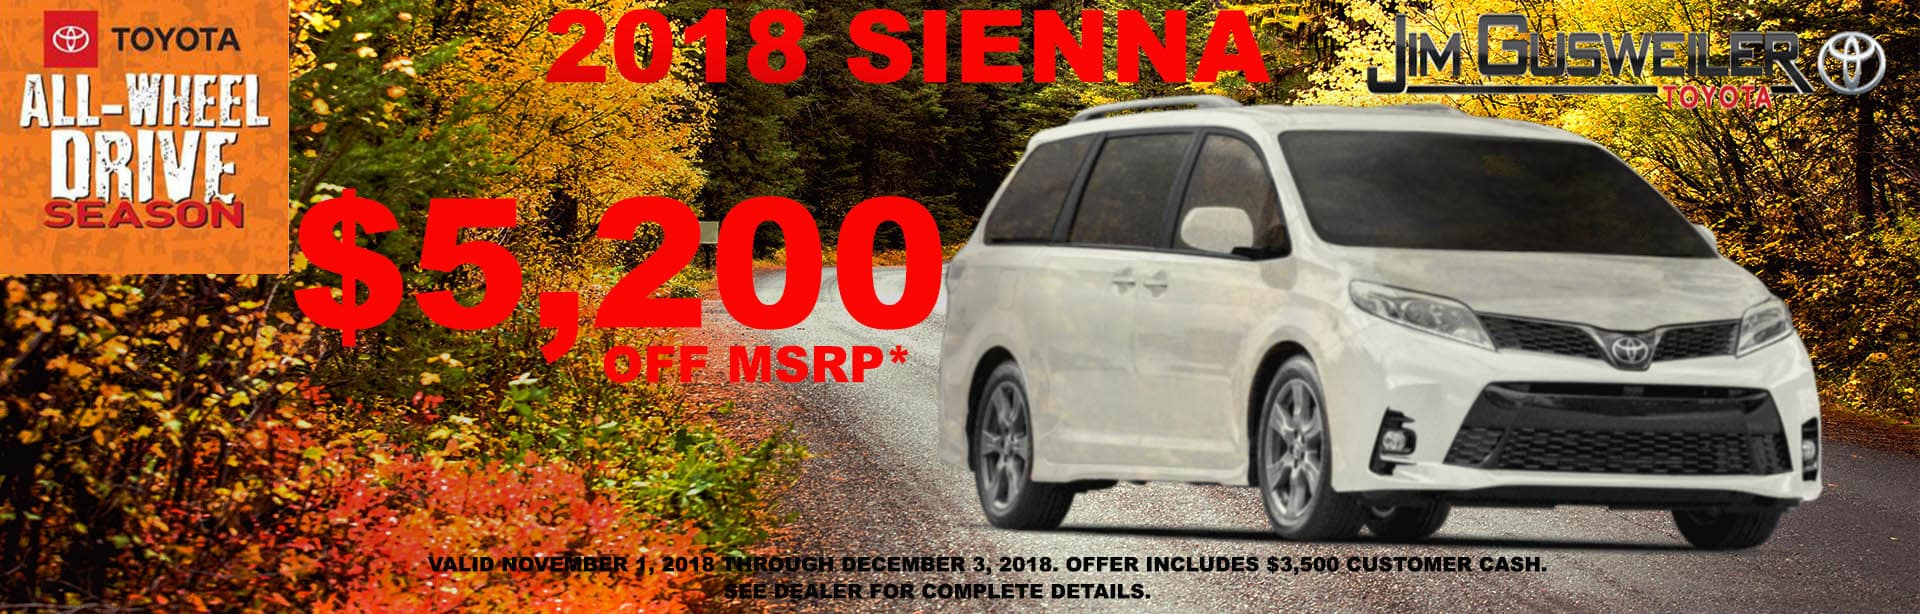 2018 Toyota Sienna Expires Dec 3rd